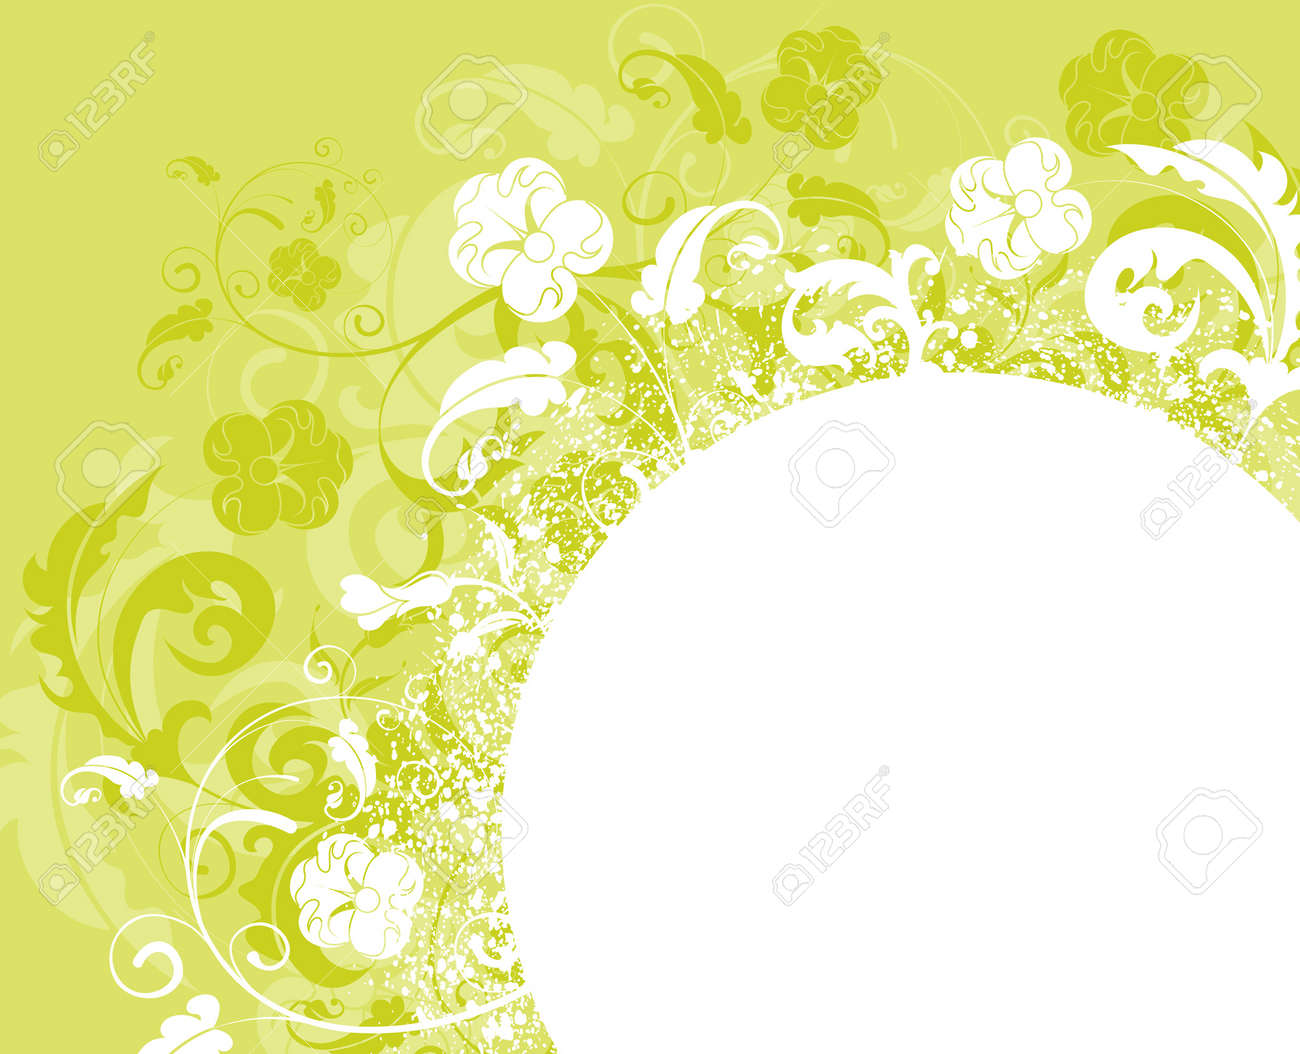 Grunge paint flower background with circle, element for design, vector illustration Stock Vector - 1533608